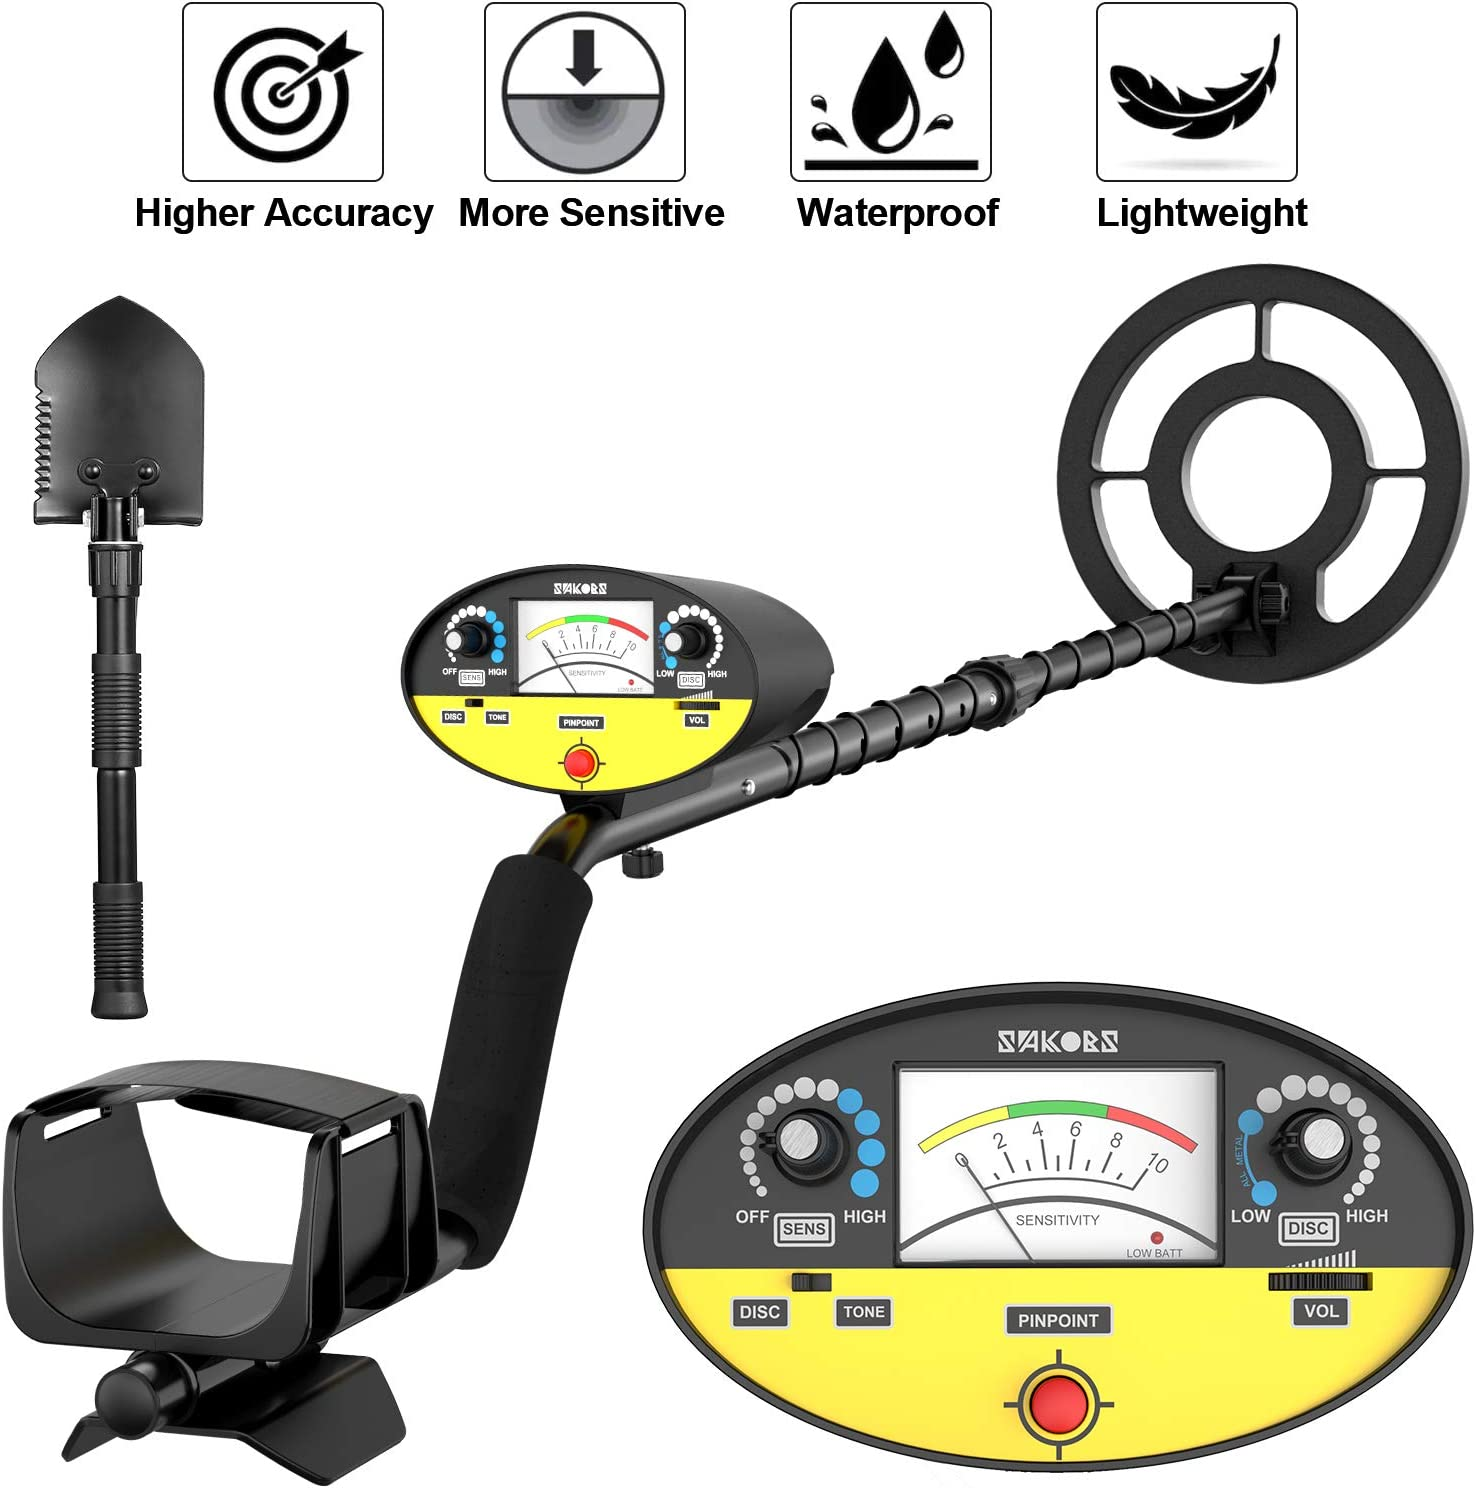 SAKOBS Metal Detector for Adults – High-Accuracy Metal Detector Waterproof Professional Disc Tone Full Metal Pinpoint Modes Gold Finder for Treasure Hunter Underwater Kids